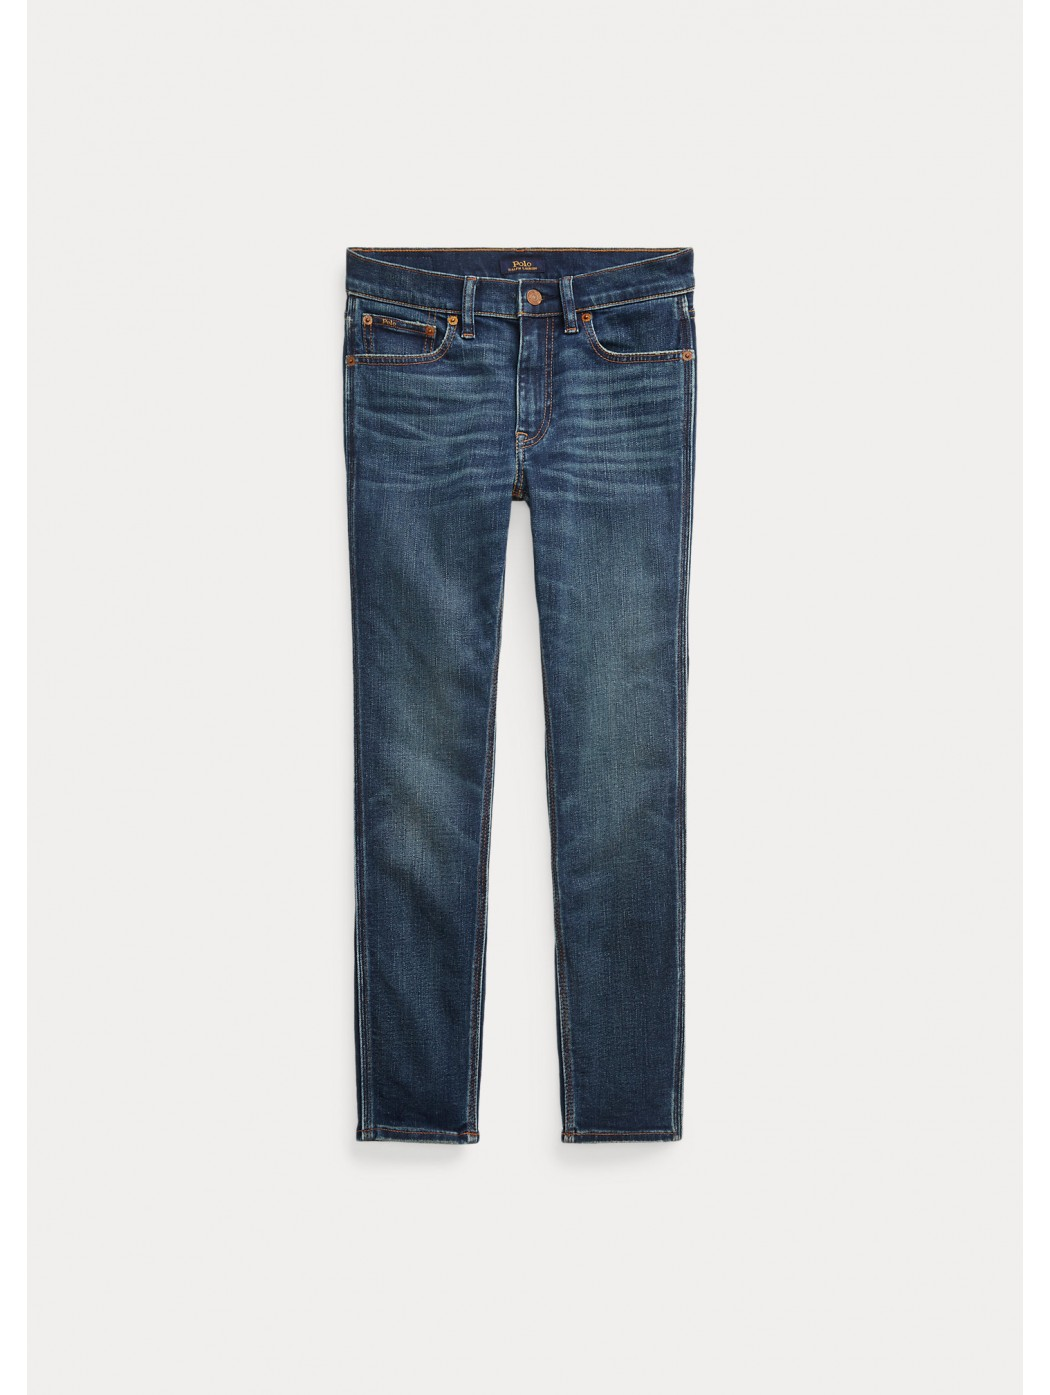 Jeans corti Tompkins skinny POLO RALPH LAUREN DONNA 211799659 001